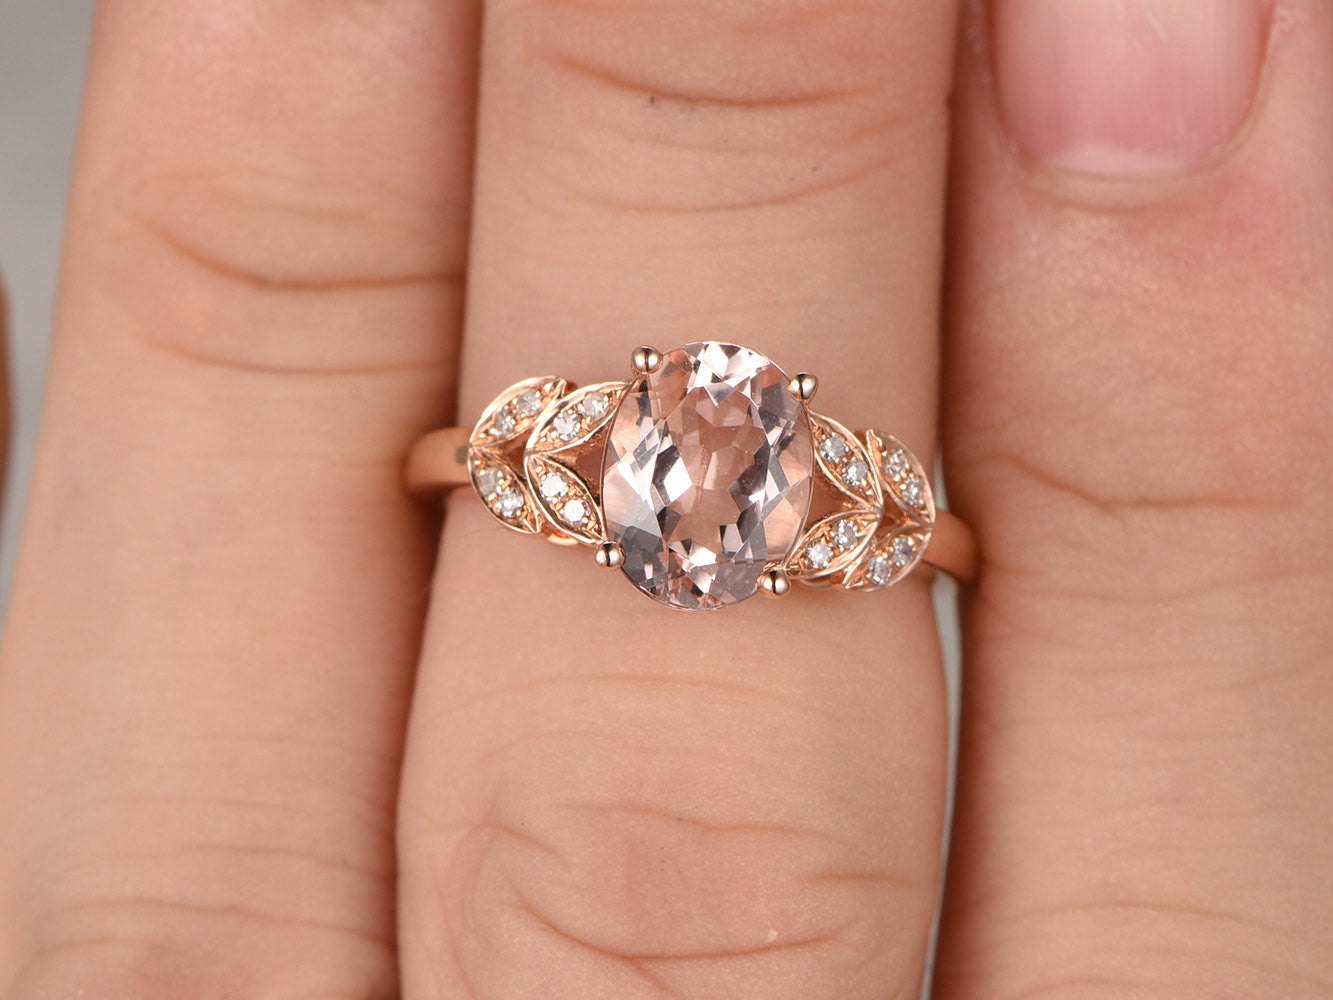 6x8mm VVS Oval Morganite Solitaire Engagement ring,14k Plain Rose gold,wedding band,Leaf,Gemstone Promise Bridal Ring,Prongs